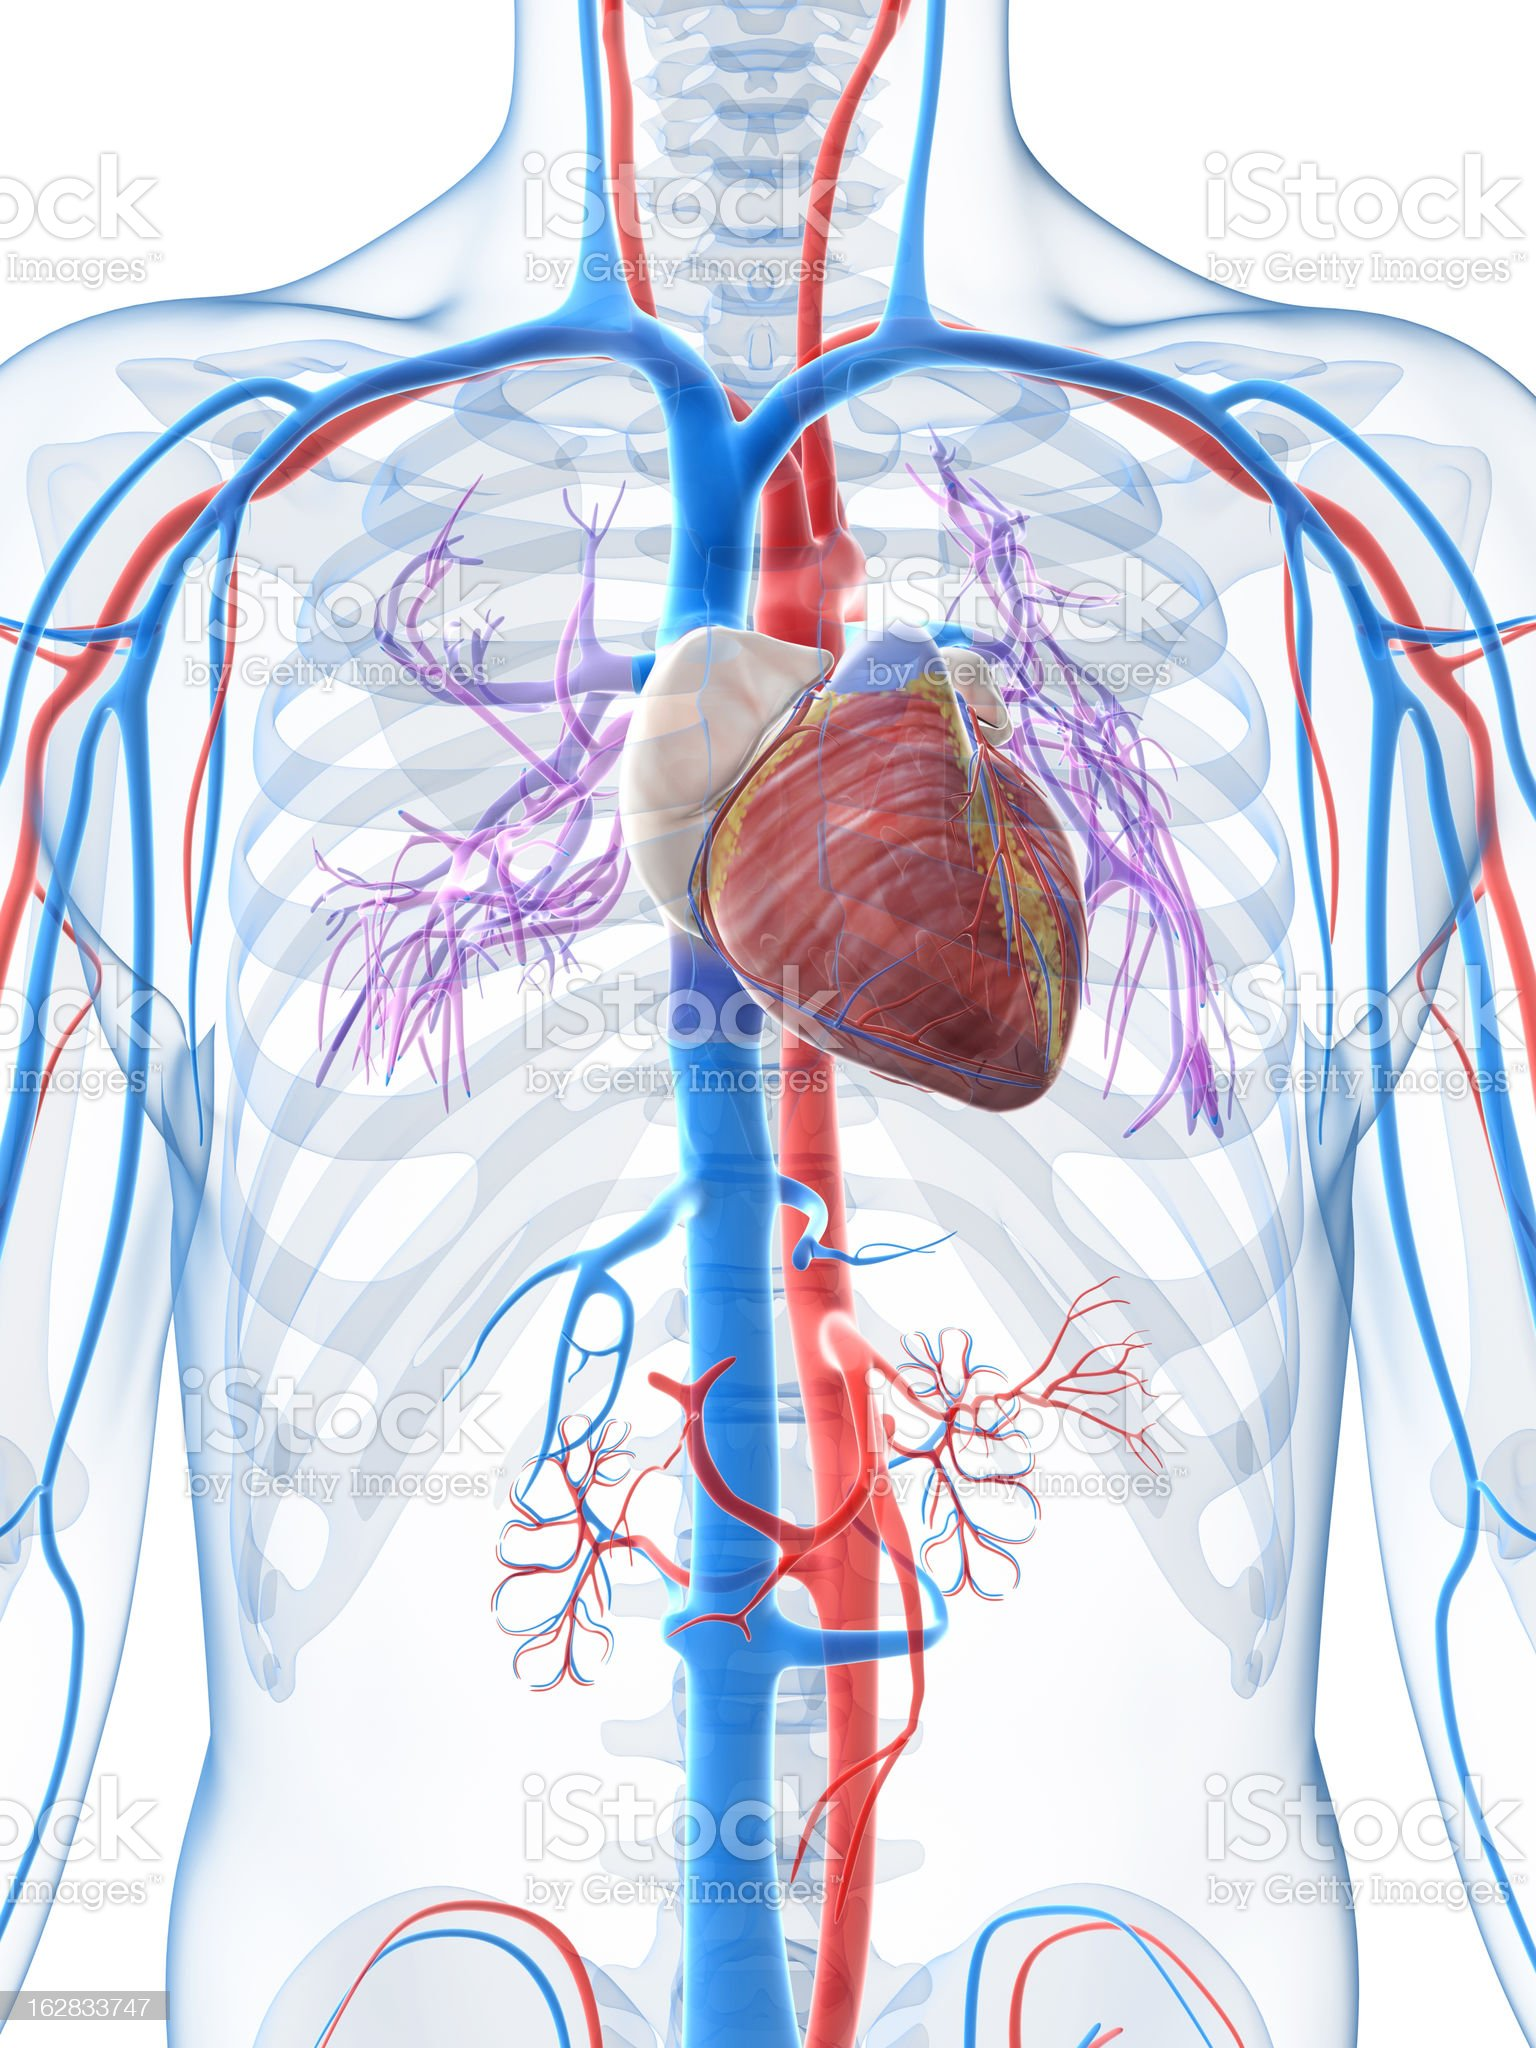 Diagram of the human heart and veins royalty-free stock photo